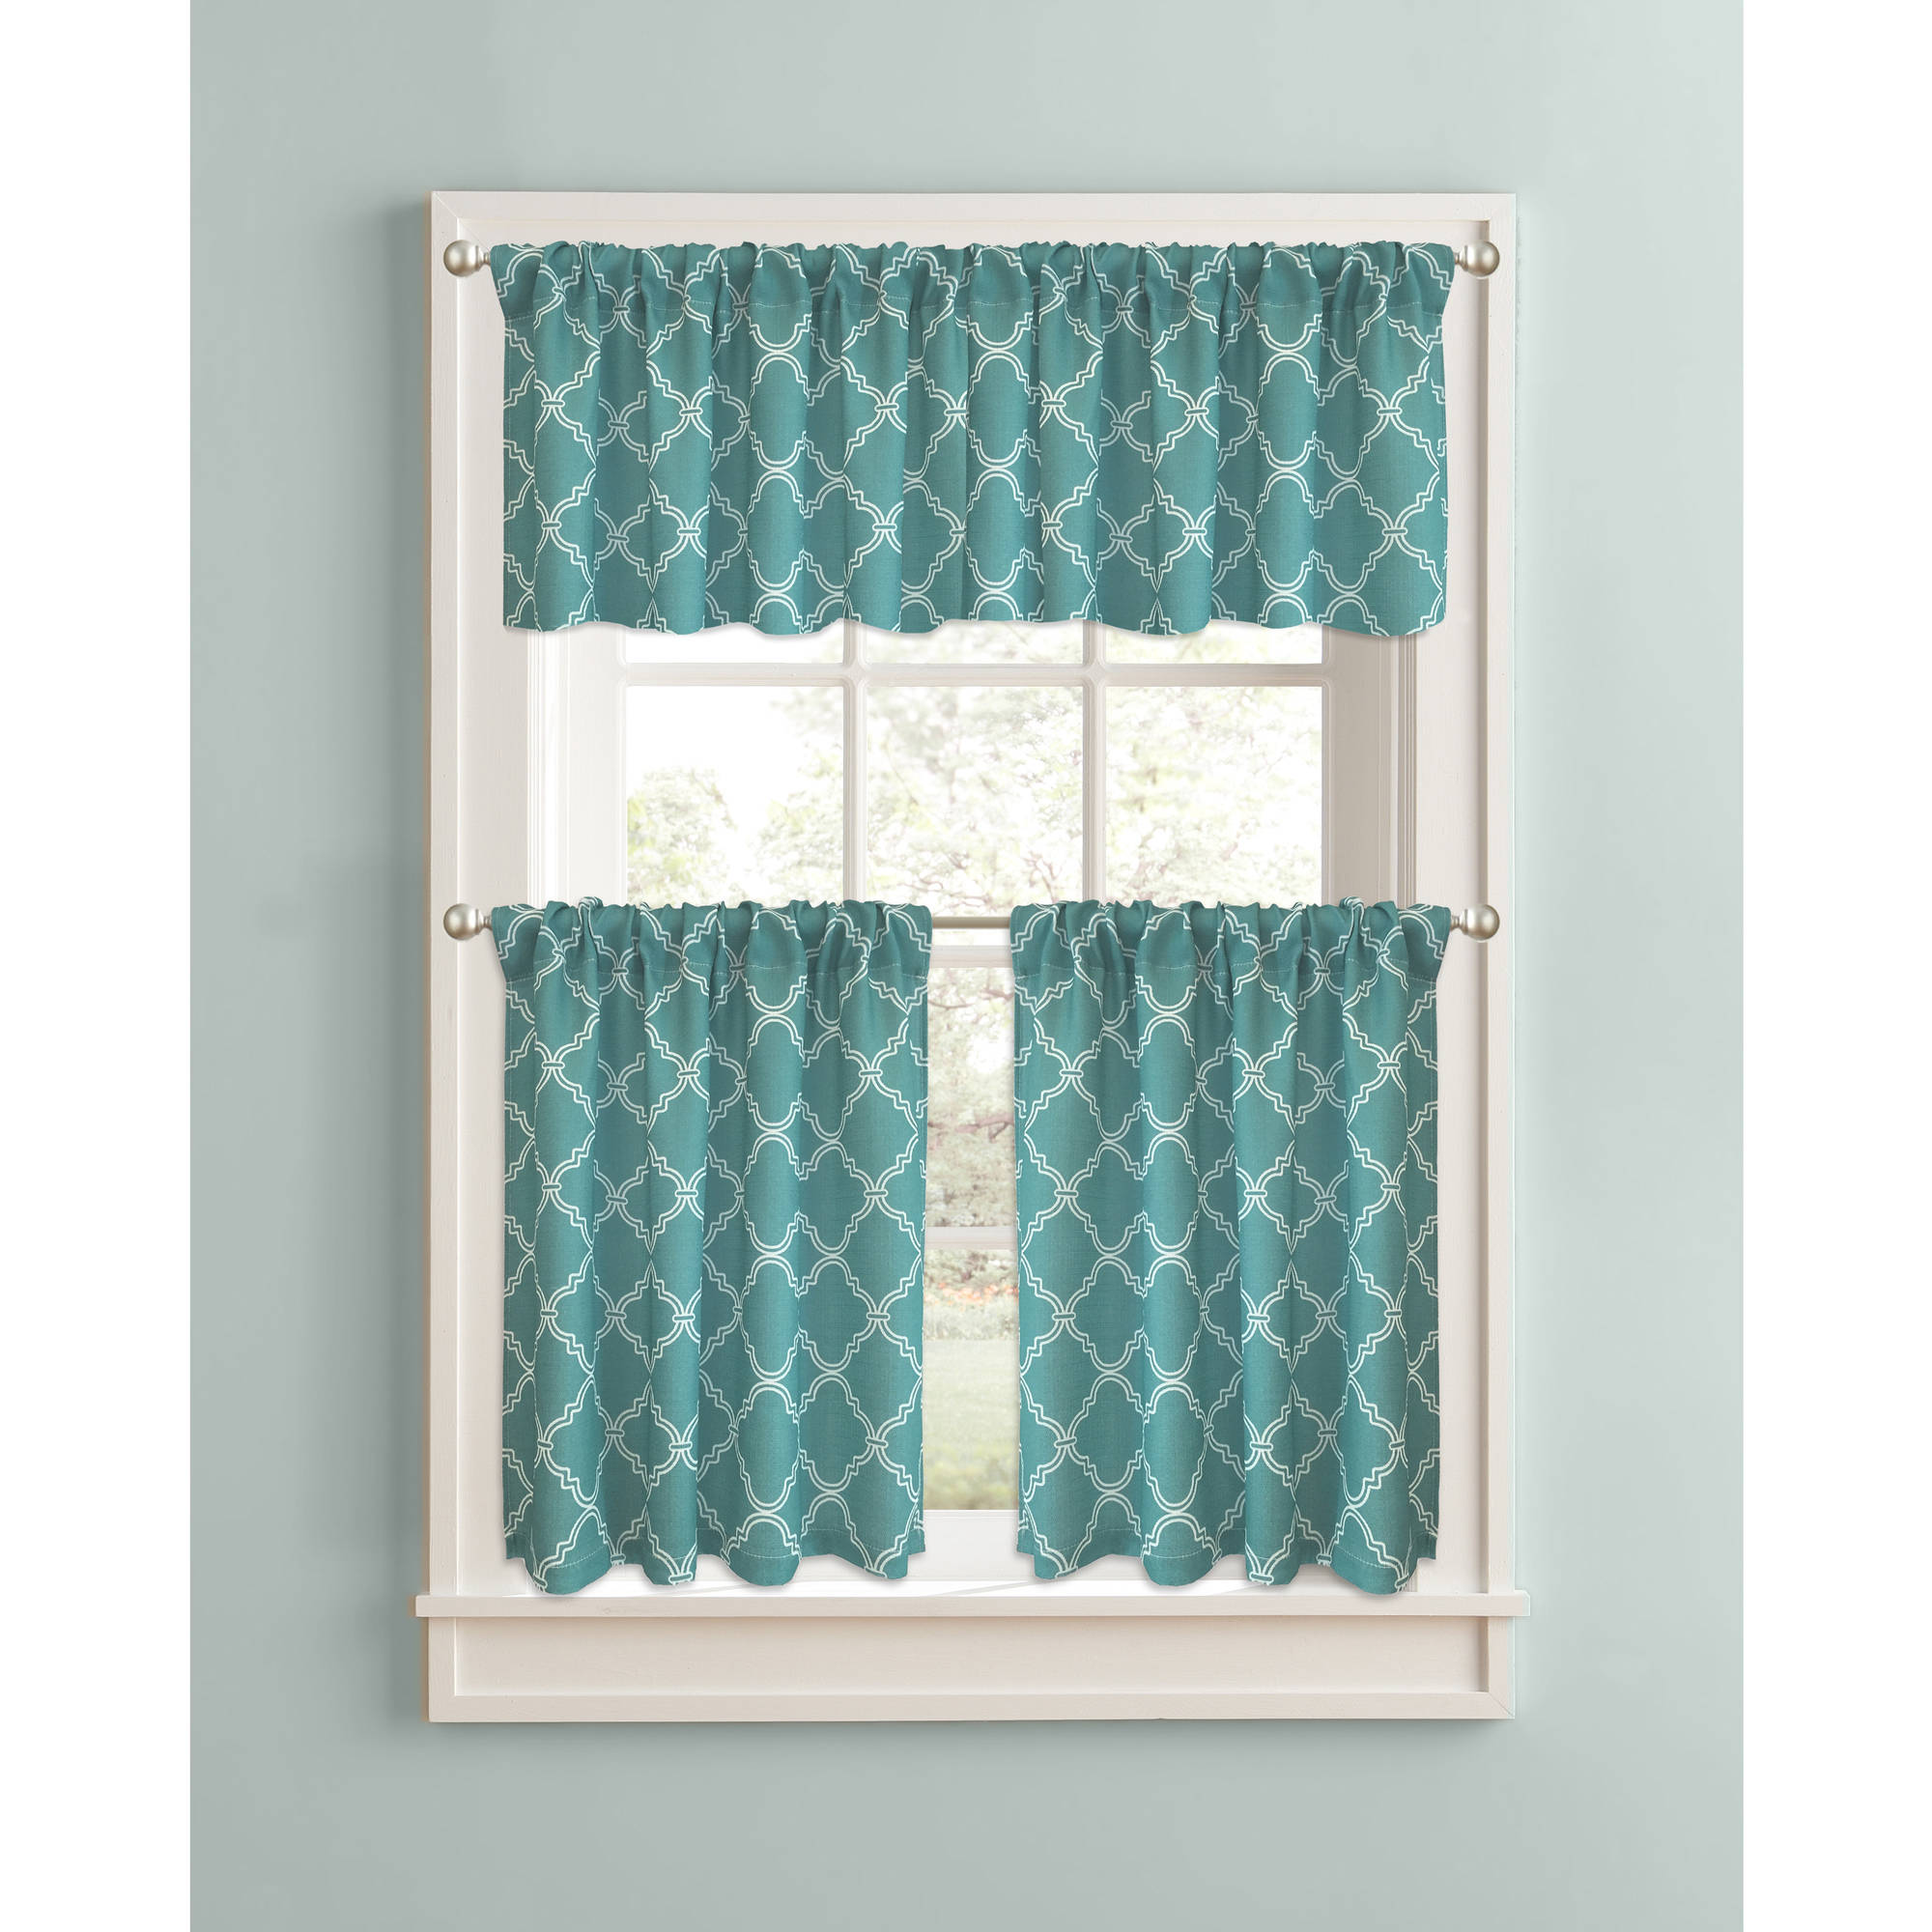 Better Homes And Gardens Trellis Kitchen Curtains, Set Of 2